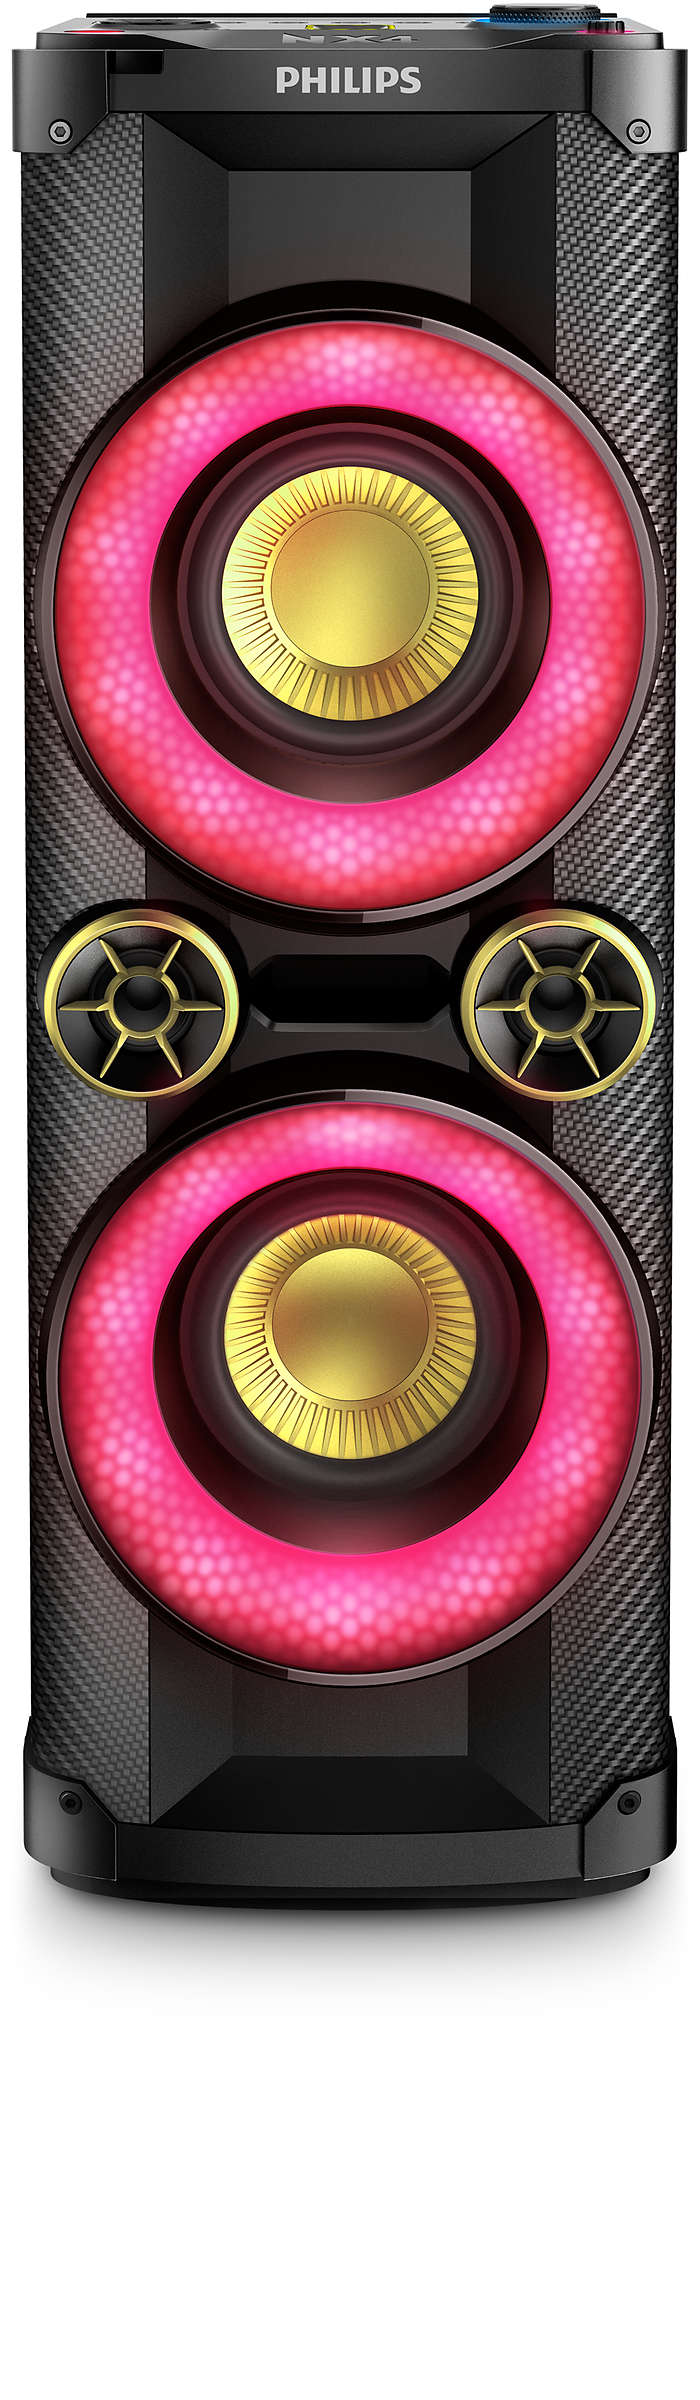 The ultimate sound machines